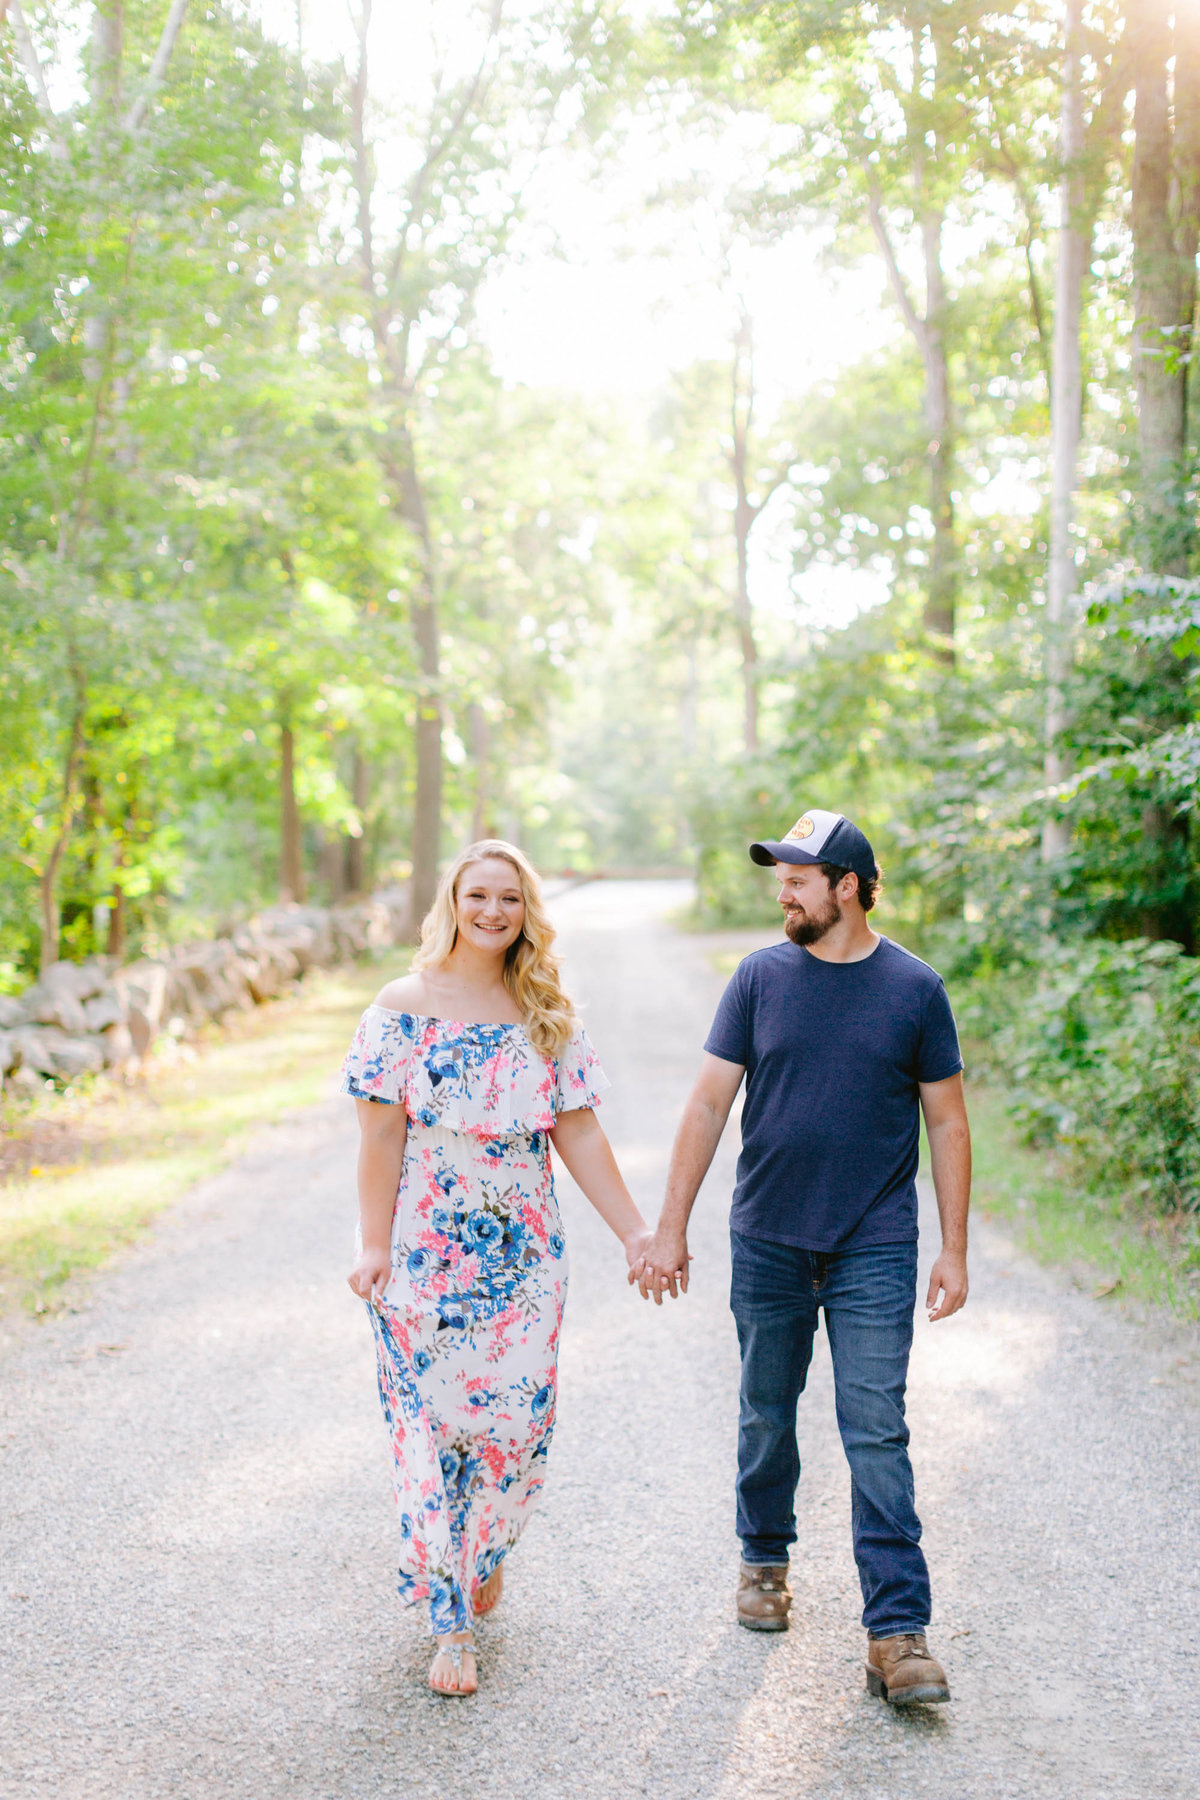 RuthandBrandon-Engaged_(20_of_128)